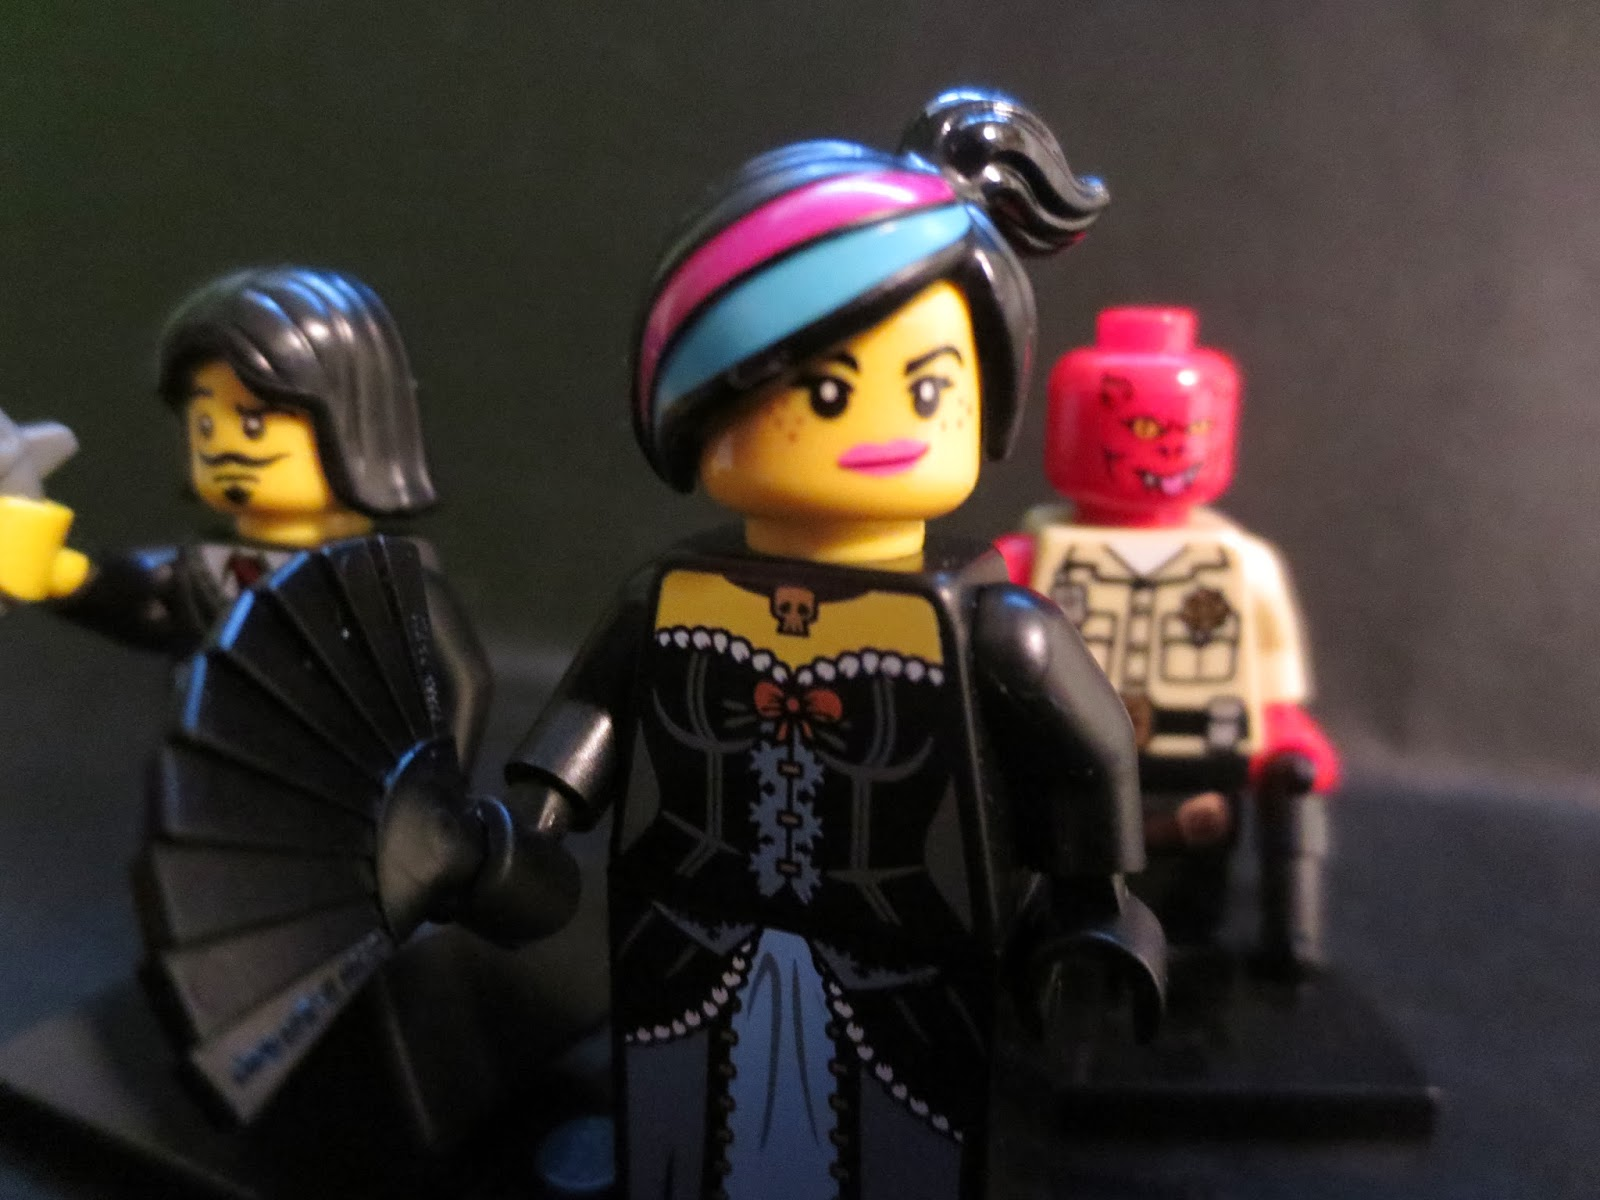 The Epic Review Lego Review Wild West Wildstyle From The Lego Movie By Lego